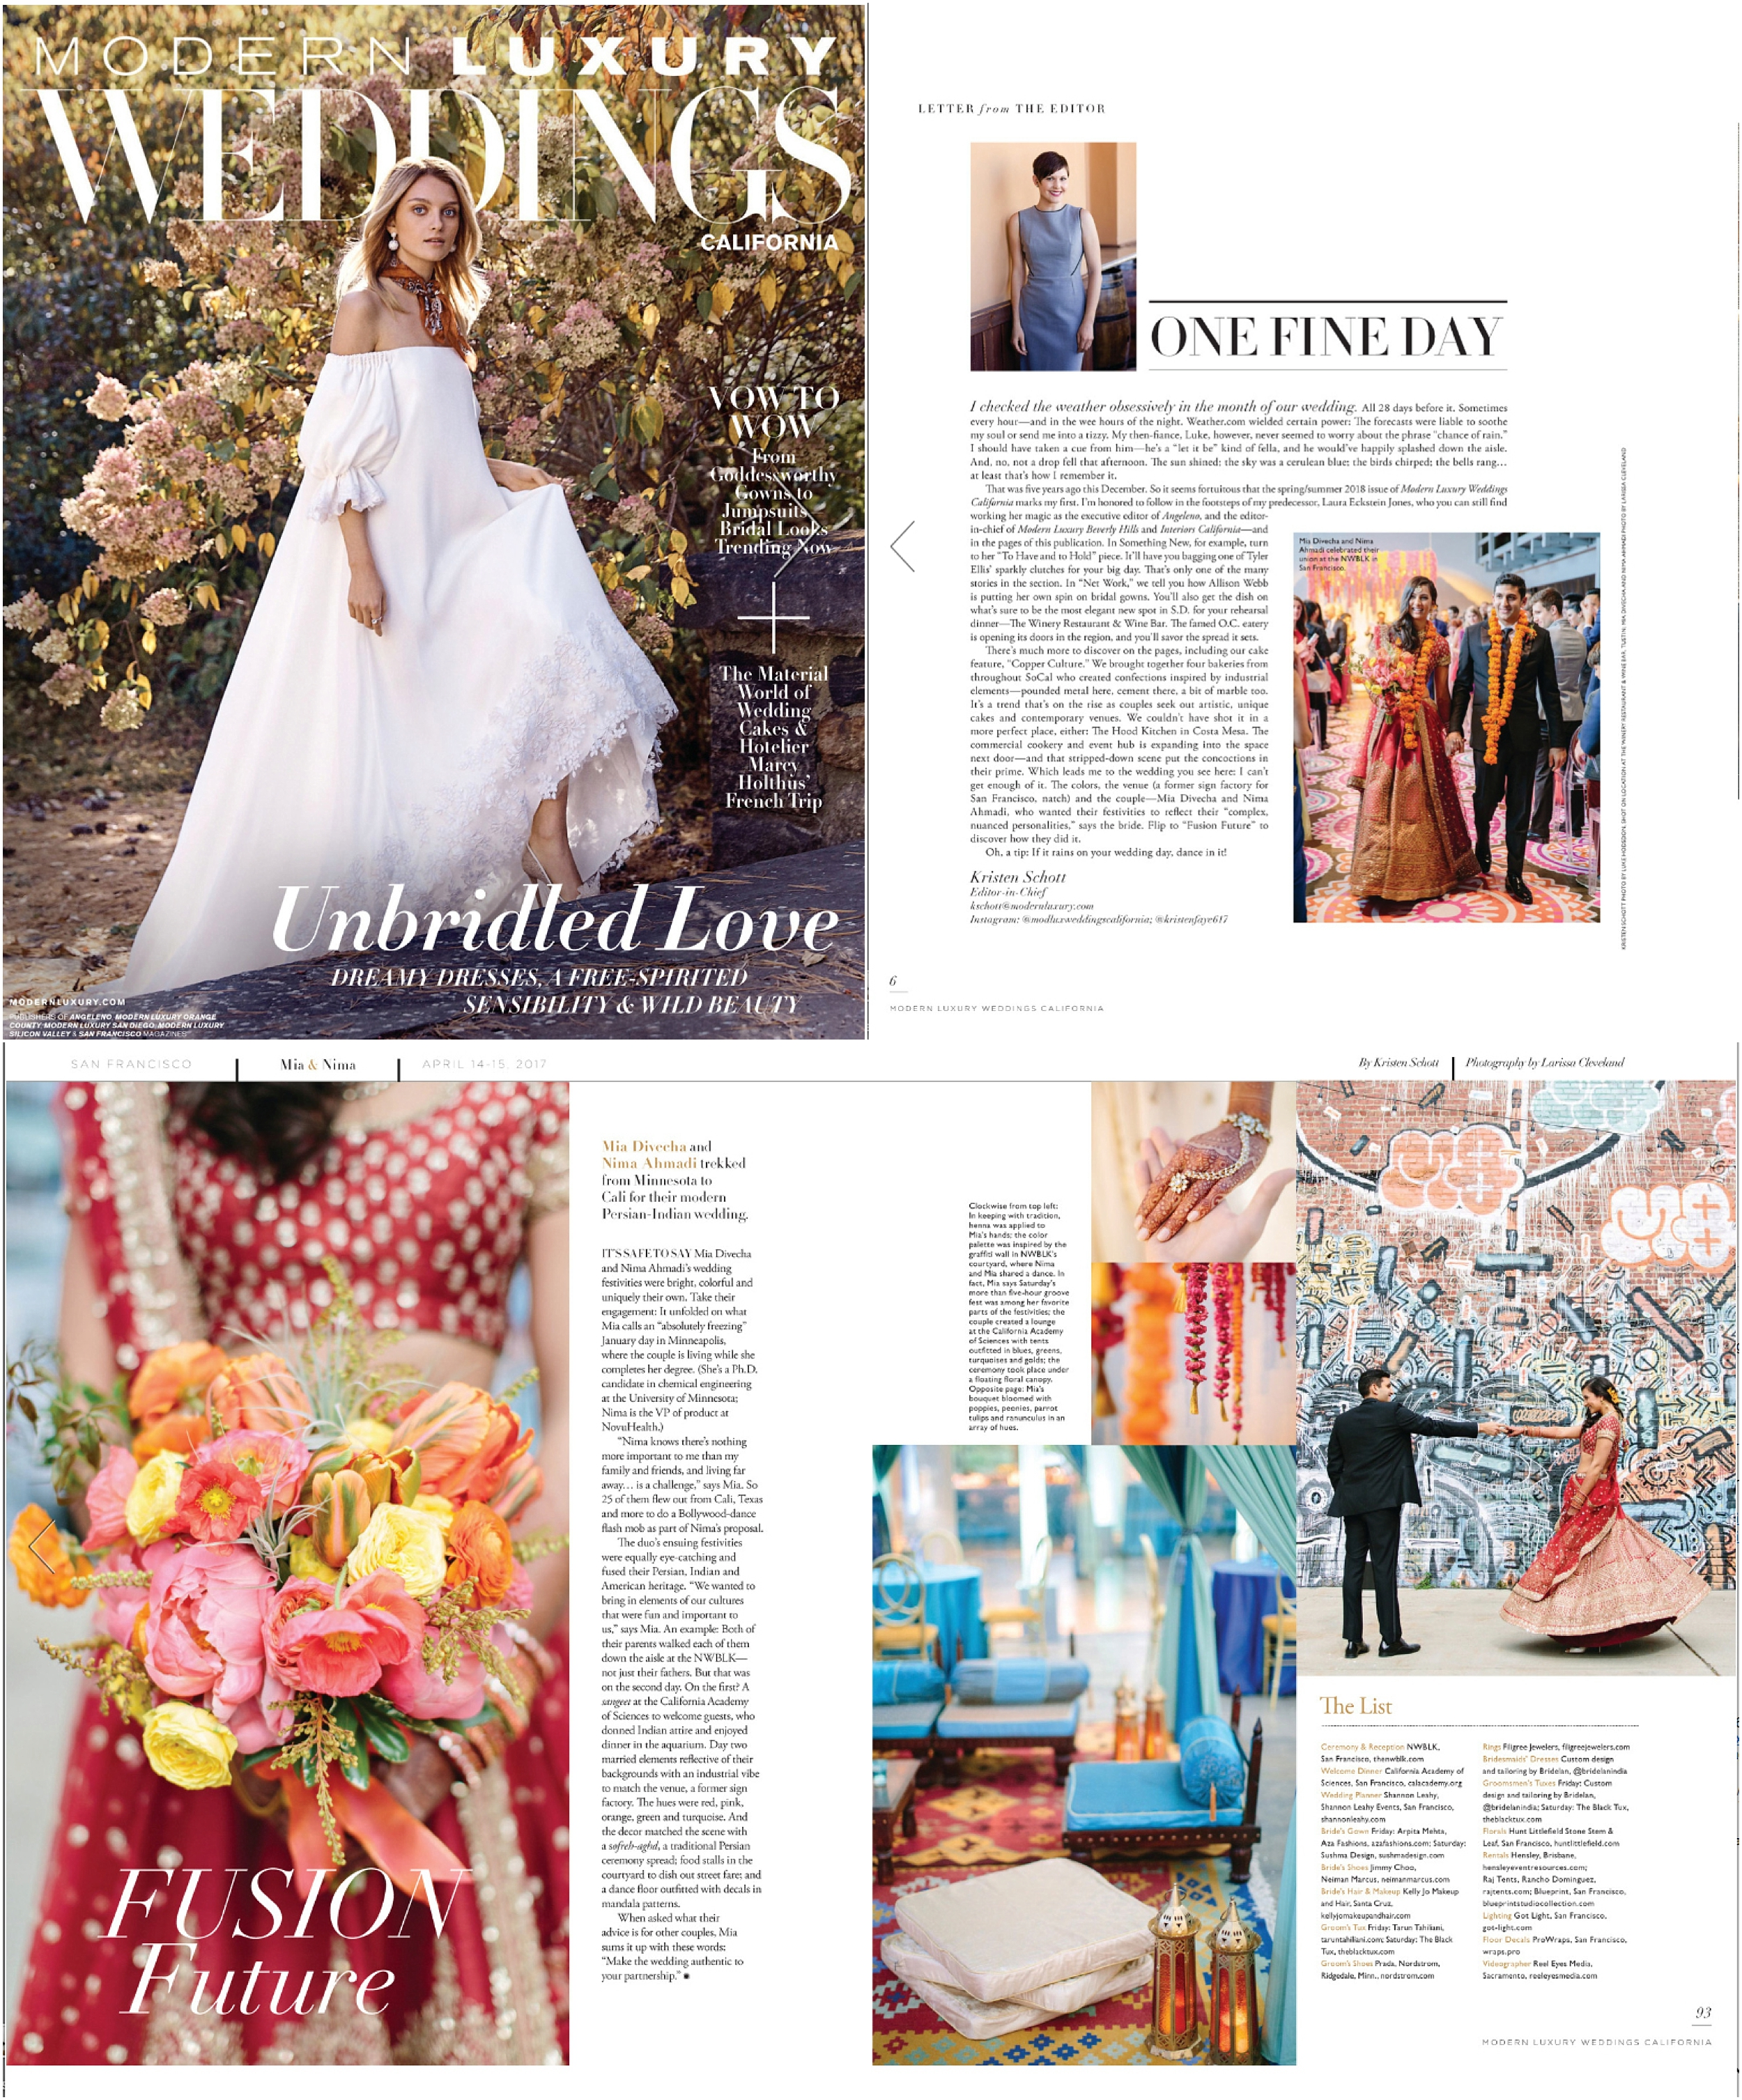 MODERN LUXURY WEDDING MAGAZINE